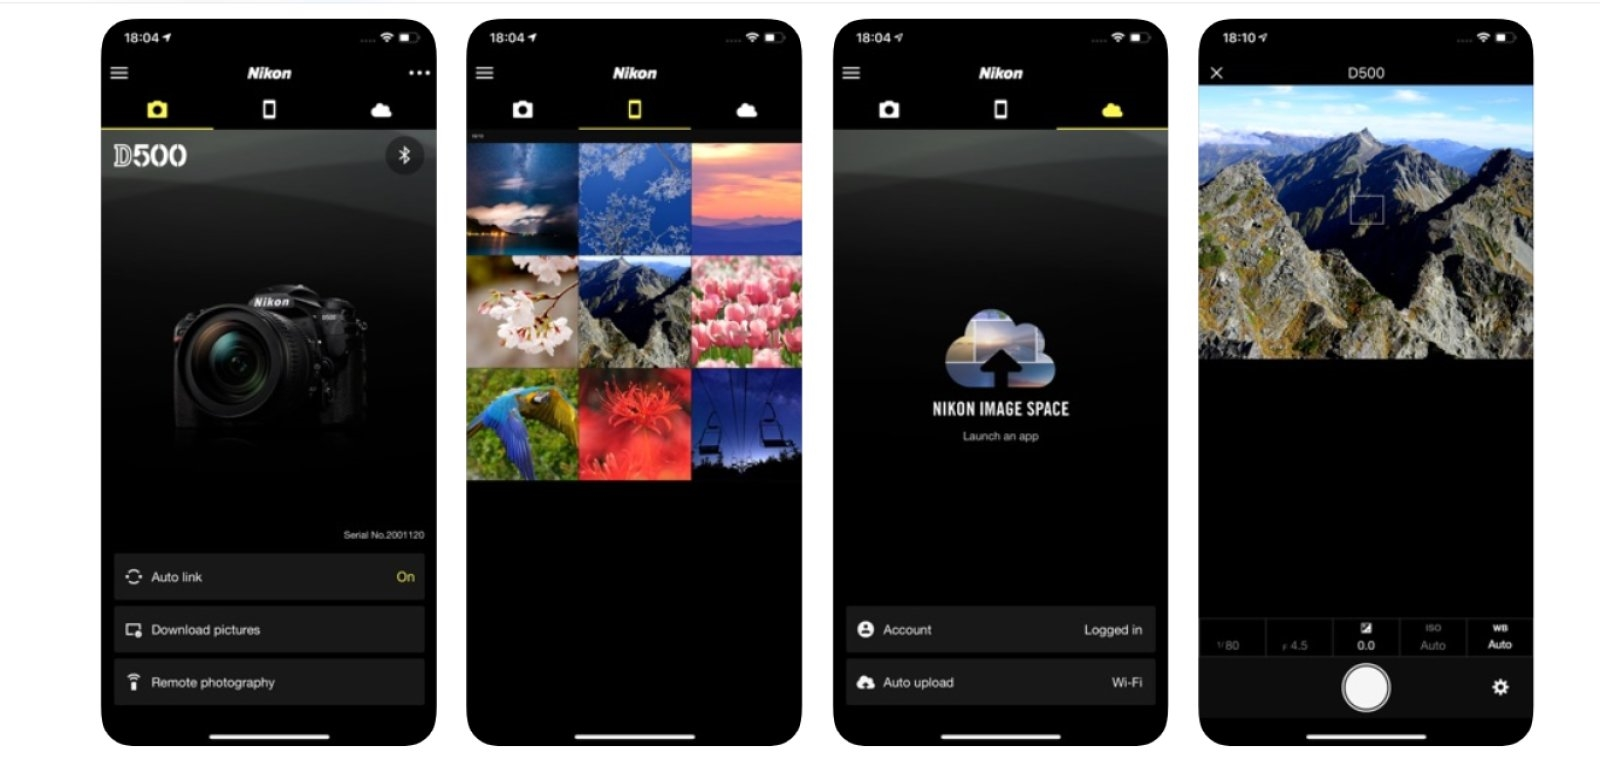 Nikon updates its SnapBridge app for faster image transfers | DeviceDaily.com